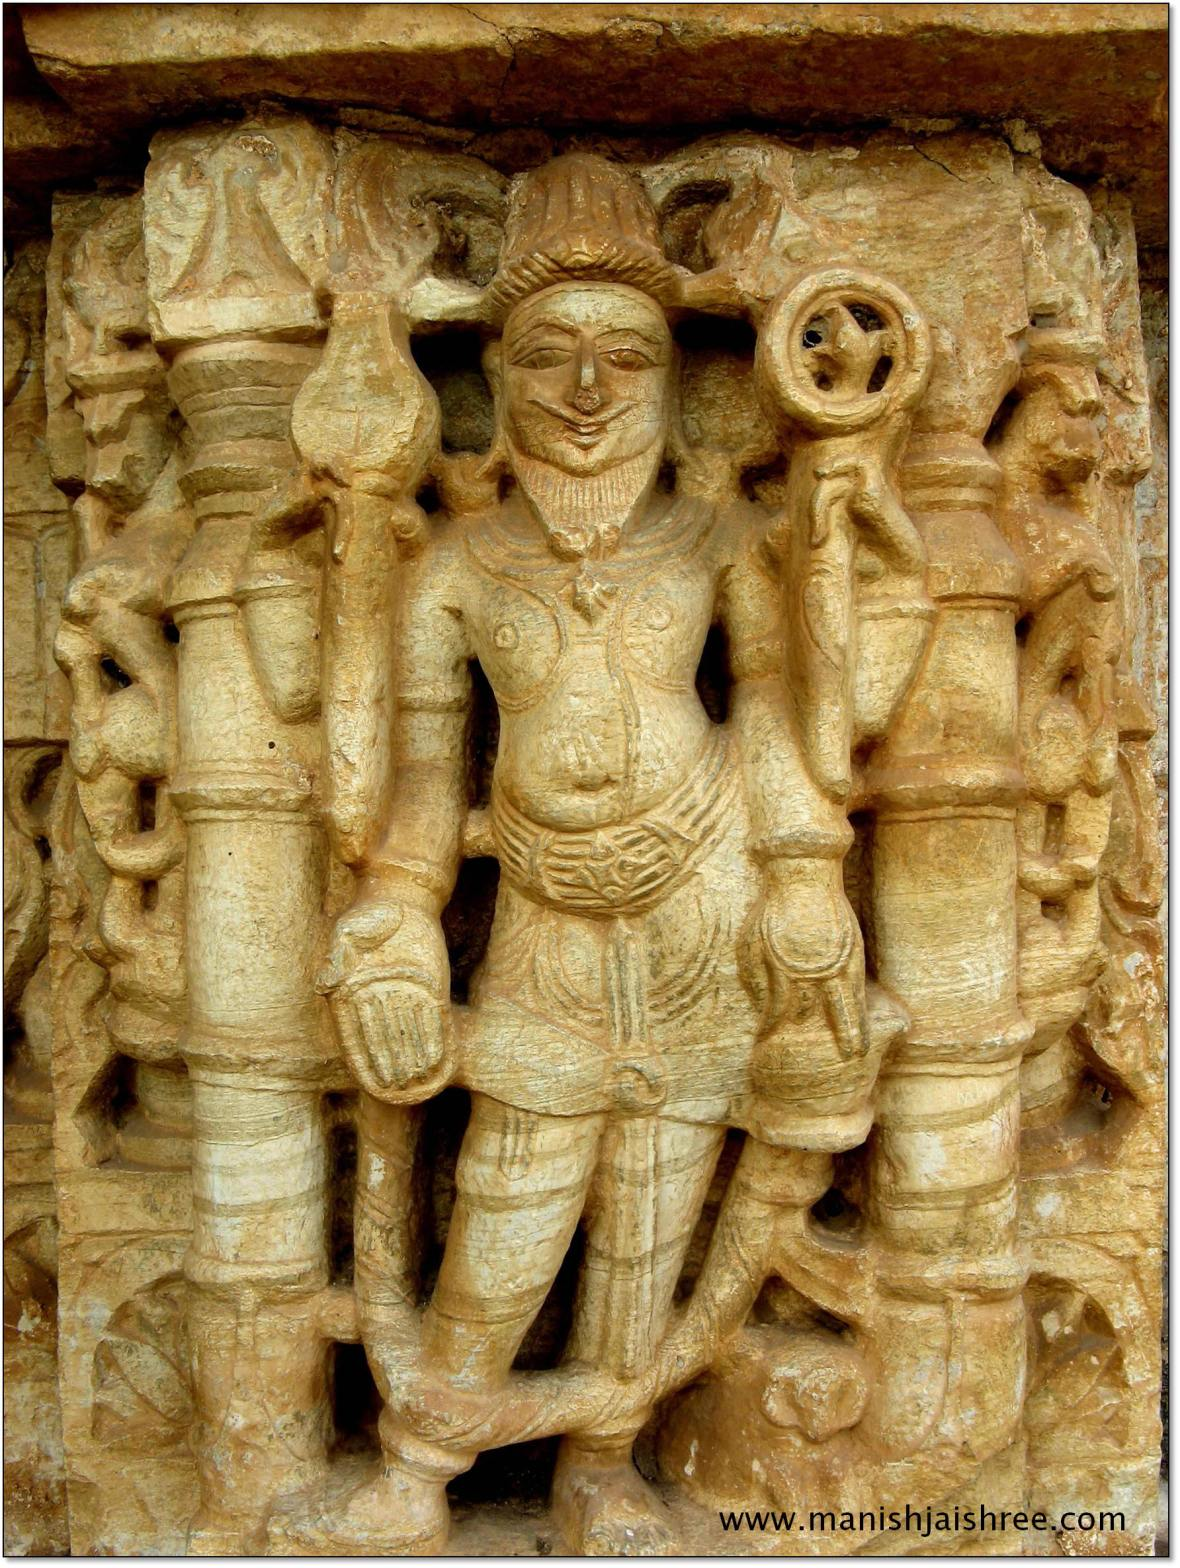 Another Deity on the walls of Saamidheswar Temple